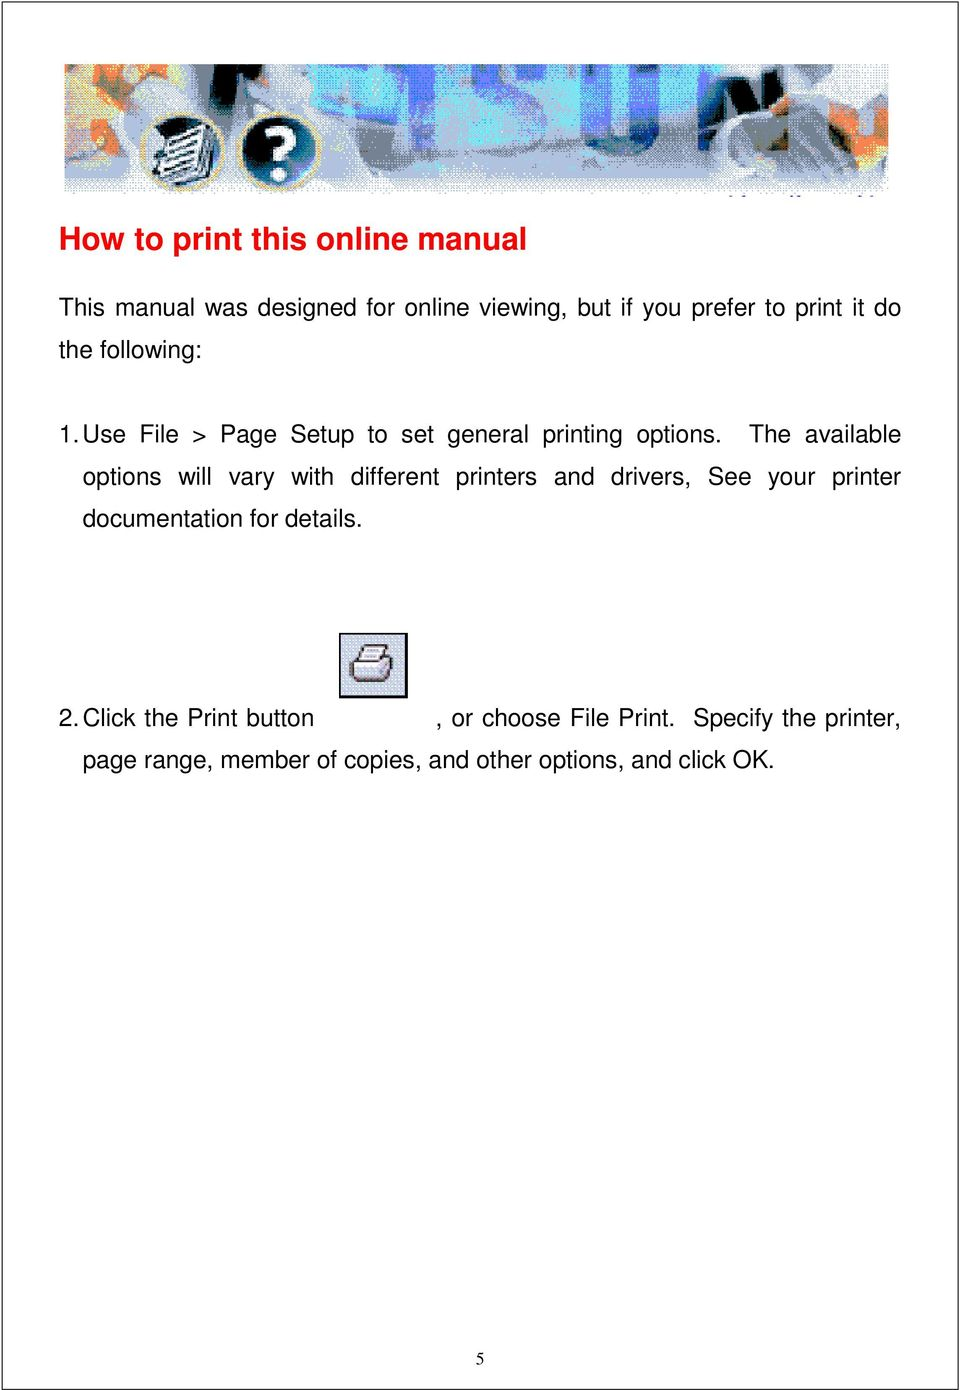 The available options will vary with different printers and drivers, See your printer documentation for